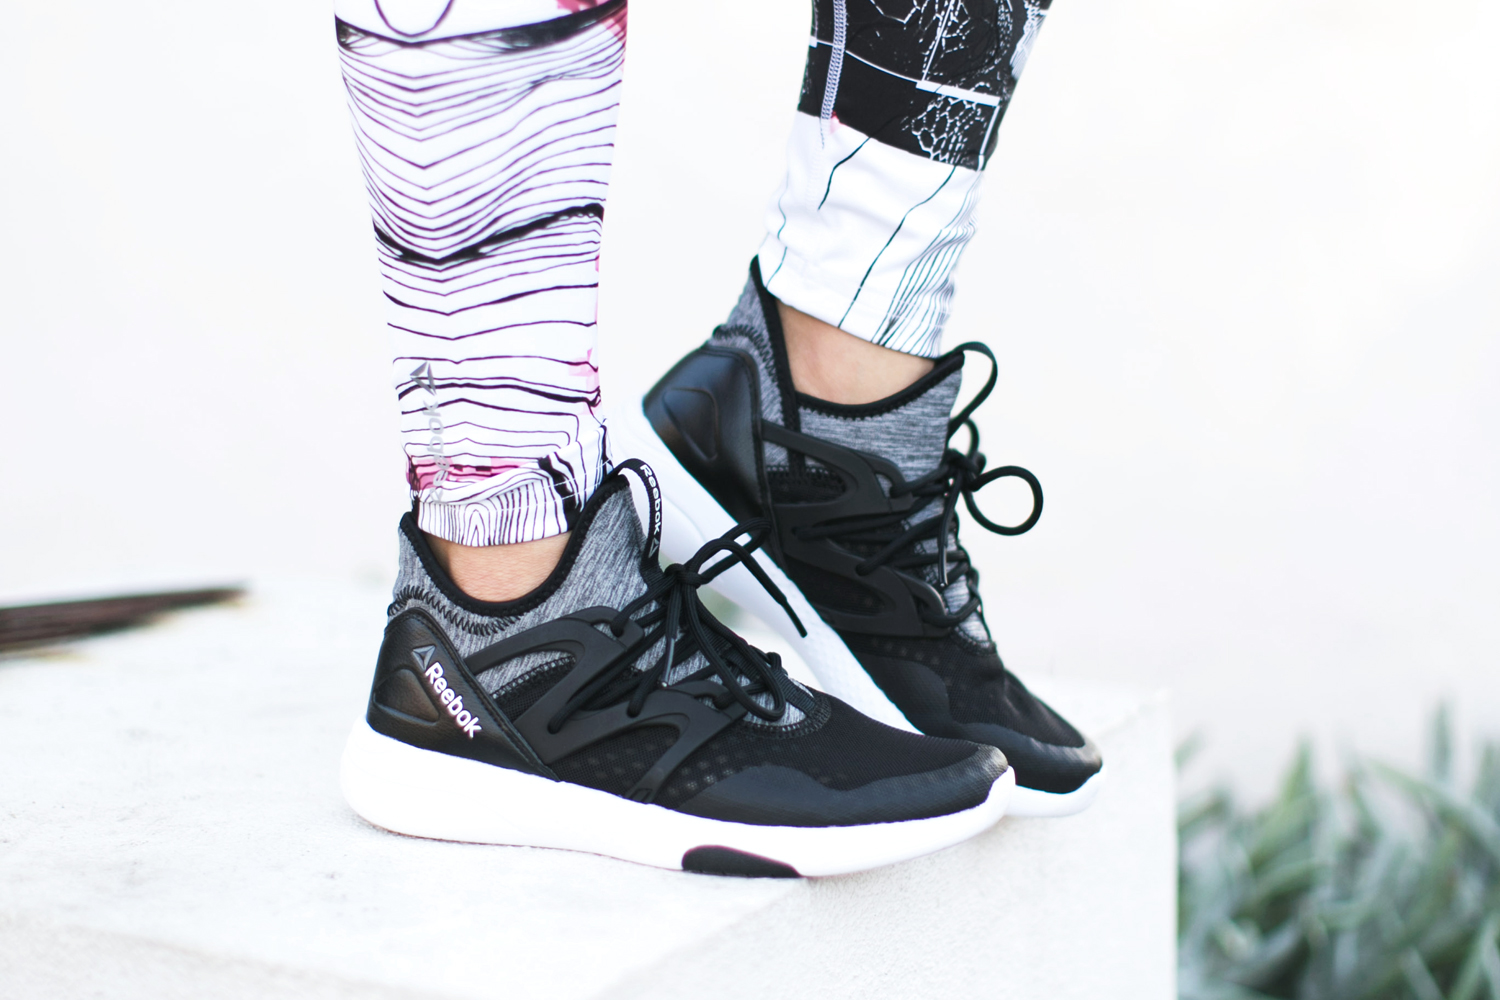 10reebok-sporty-active-sneakers-style